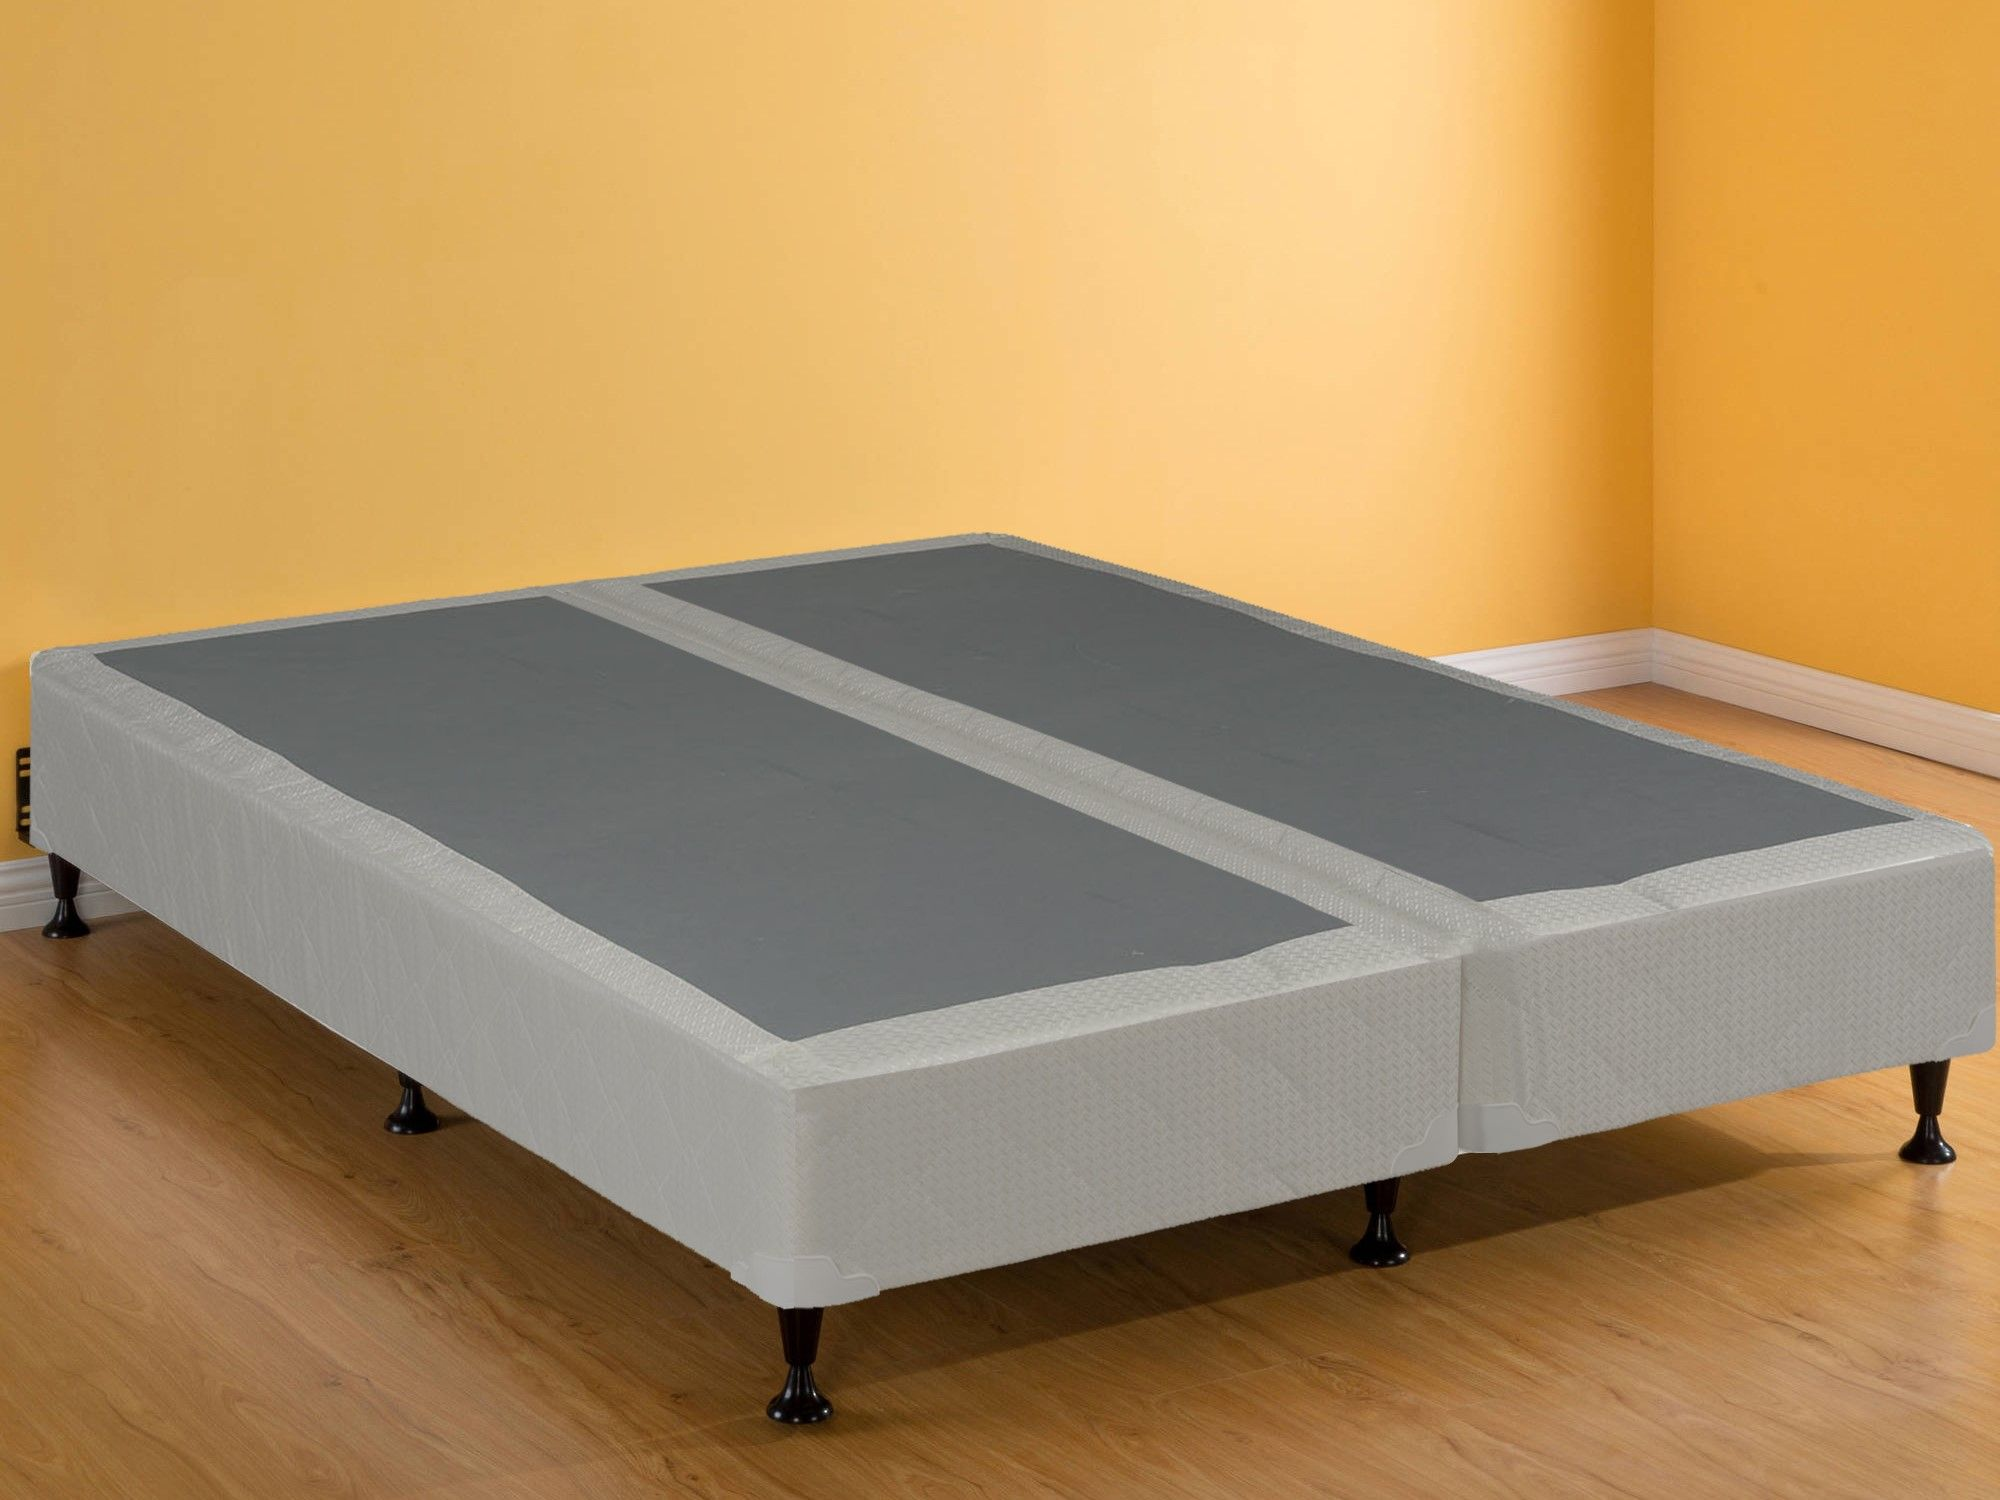 Reyteam 8 Split Box Spring Foundation For Any Kind Mattress